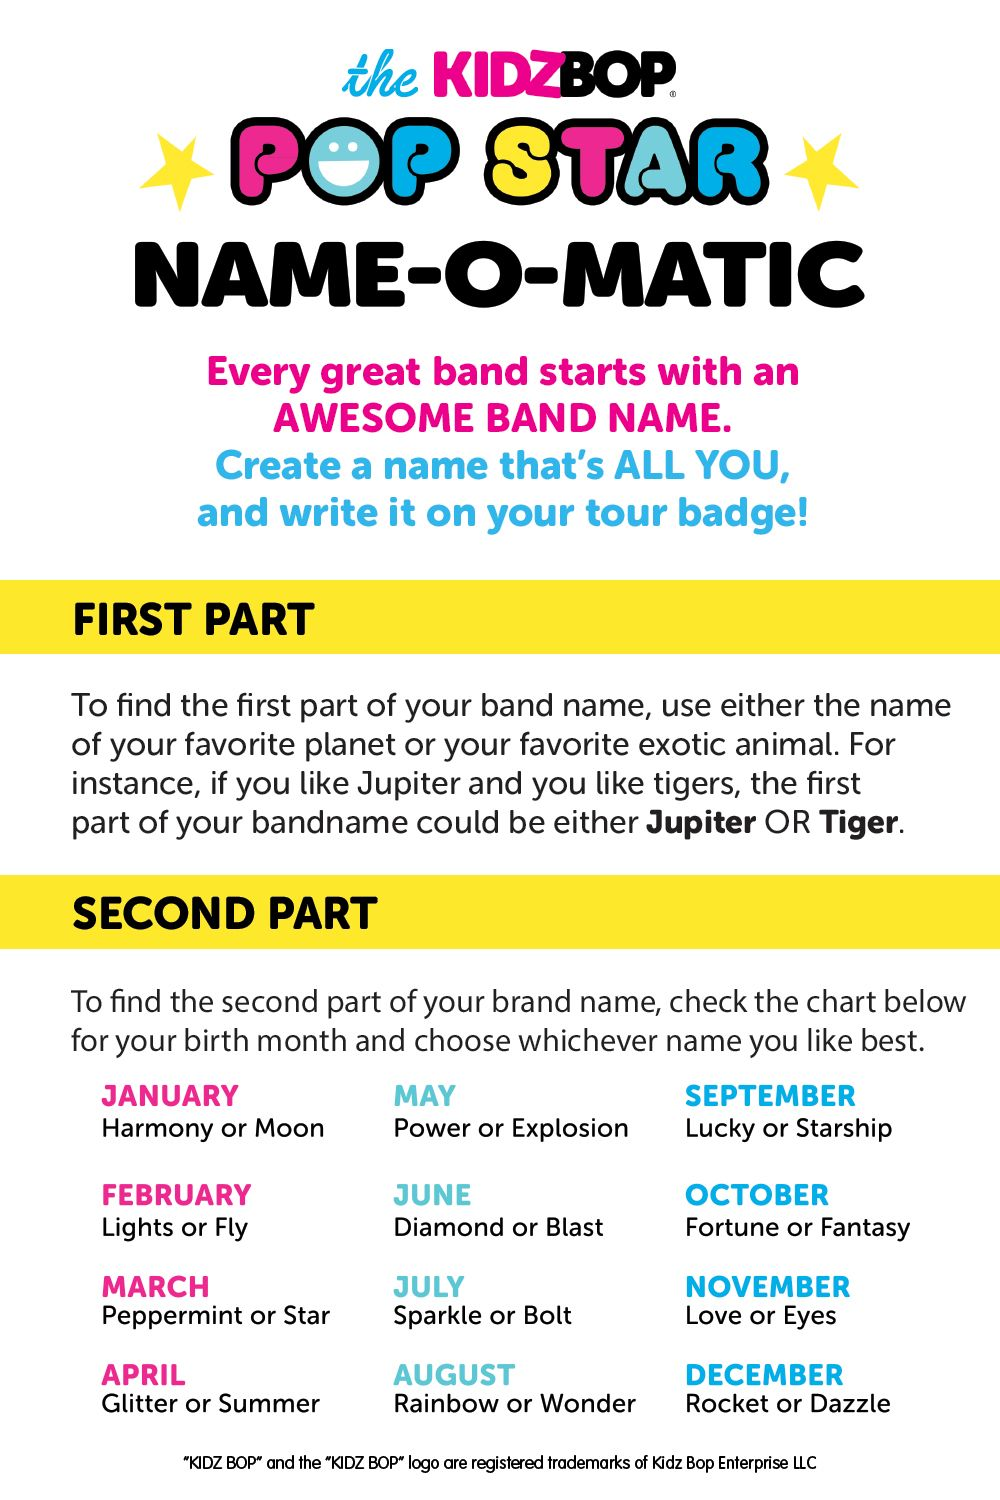 Create Your Own Kidz Bop Pop Star Name In 2020 Kidz Bop Music And Movement Movement Idea